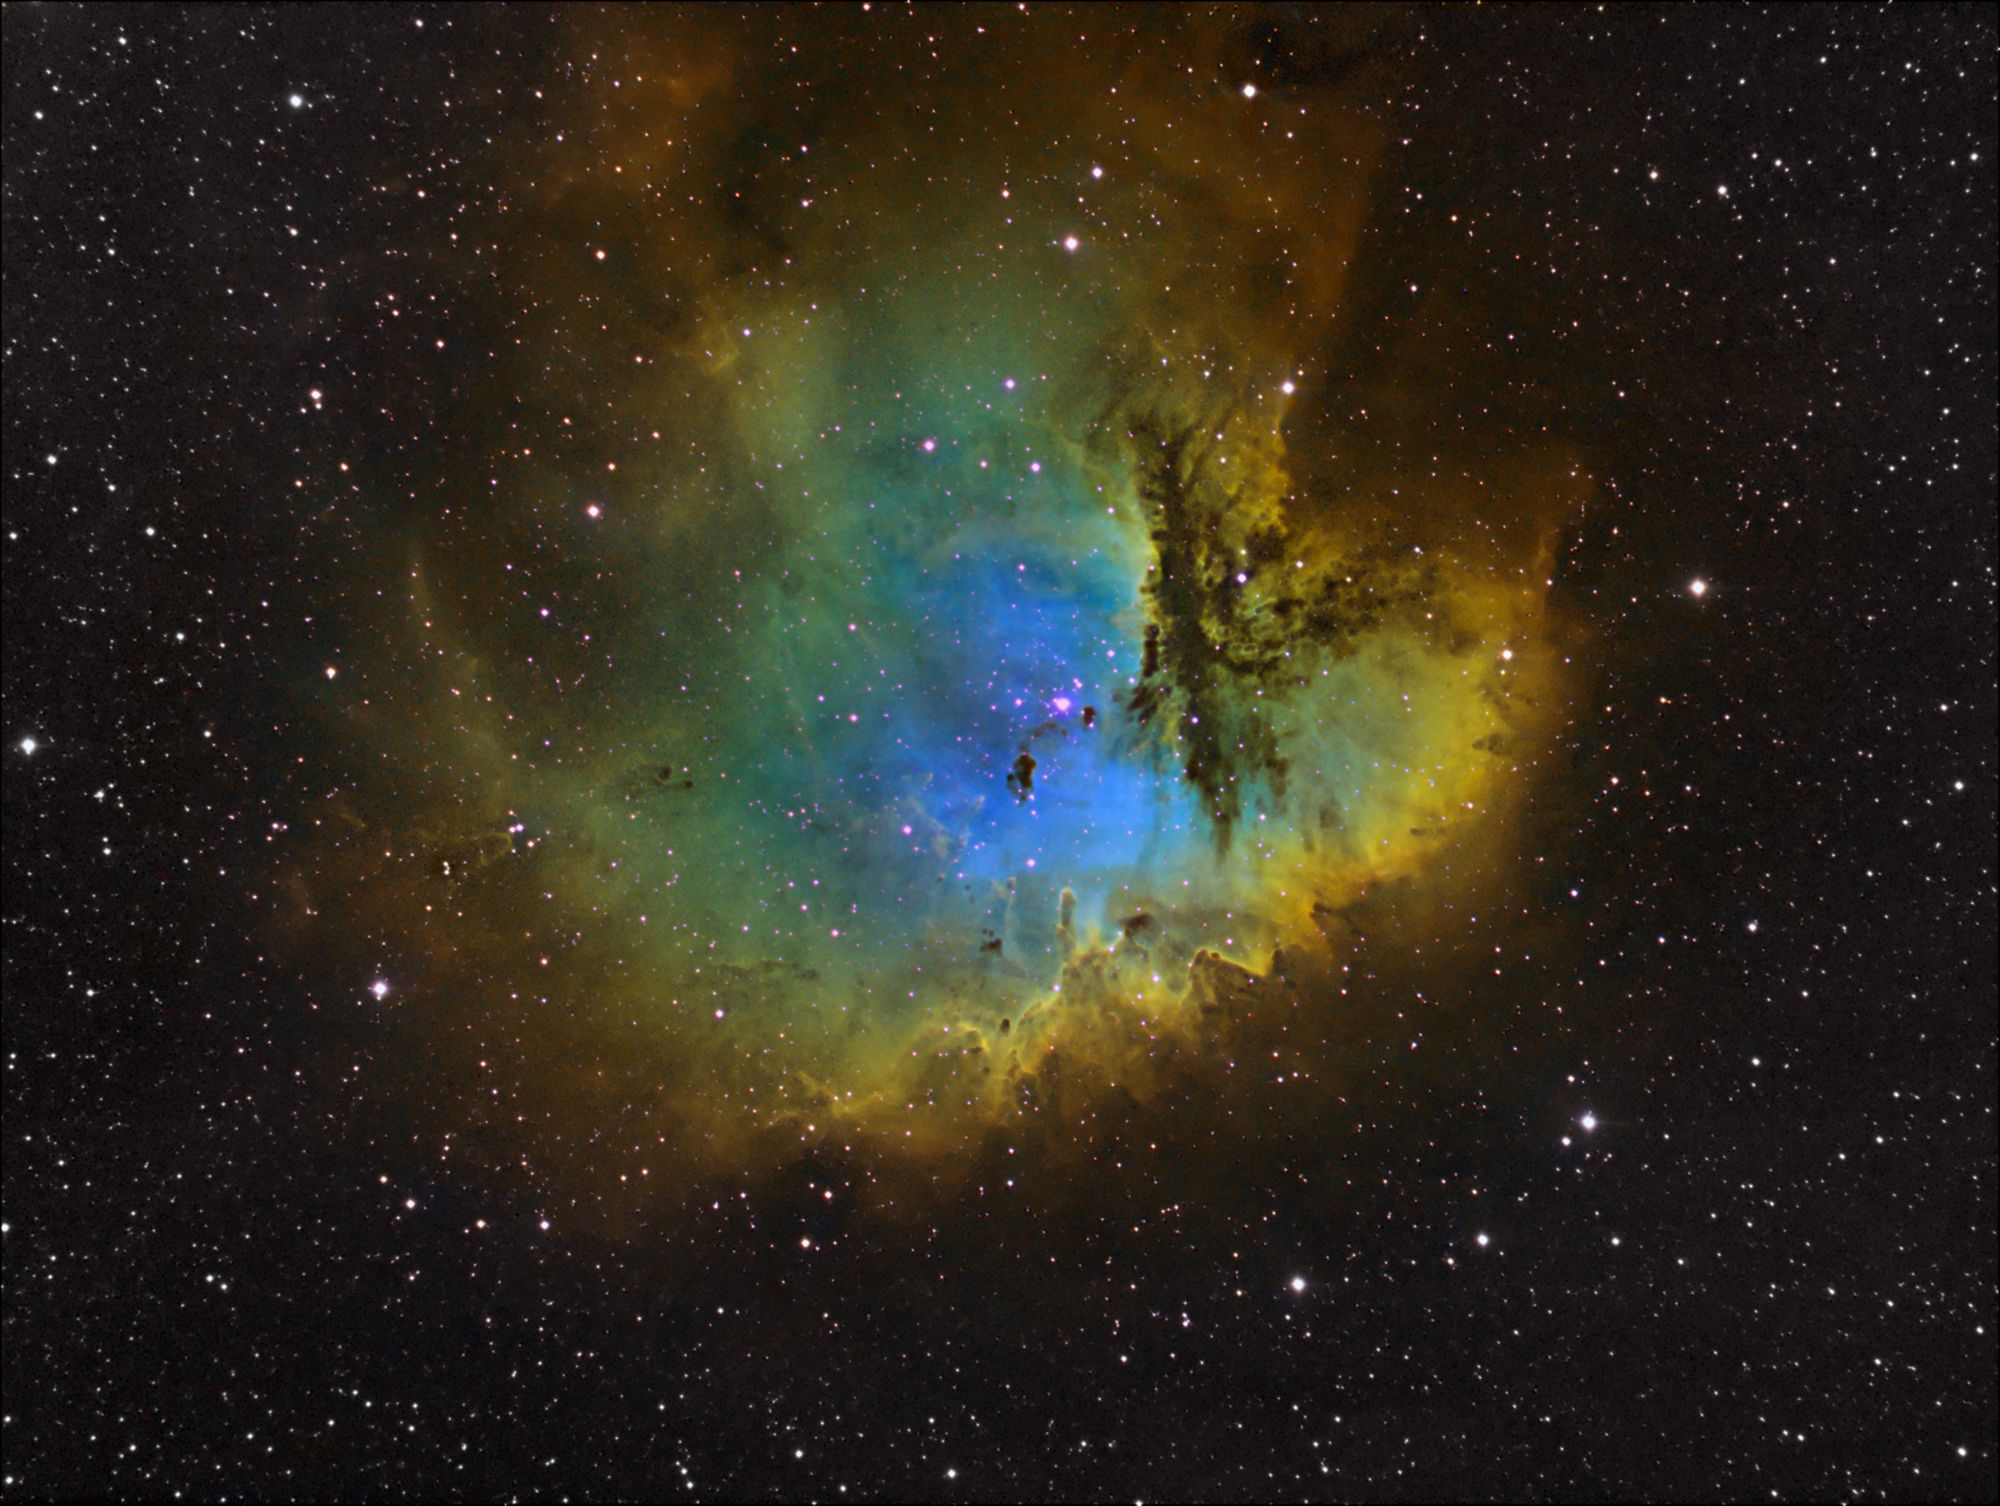 NGC 281 - Pacman Nebula | Astronomy Pictures at Orion ...